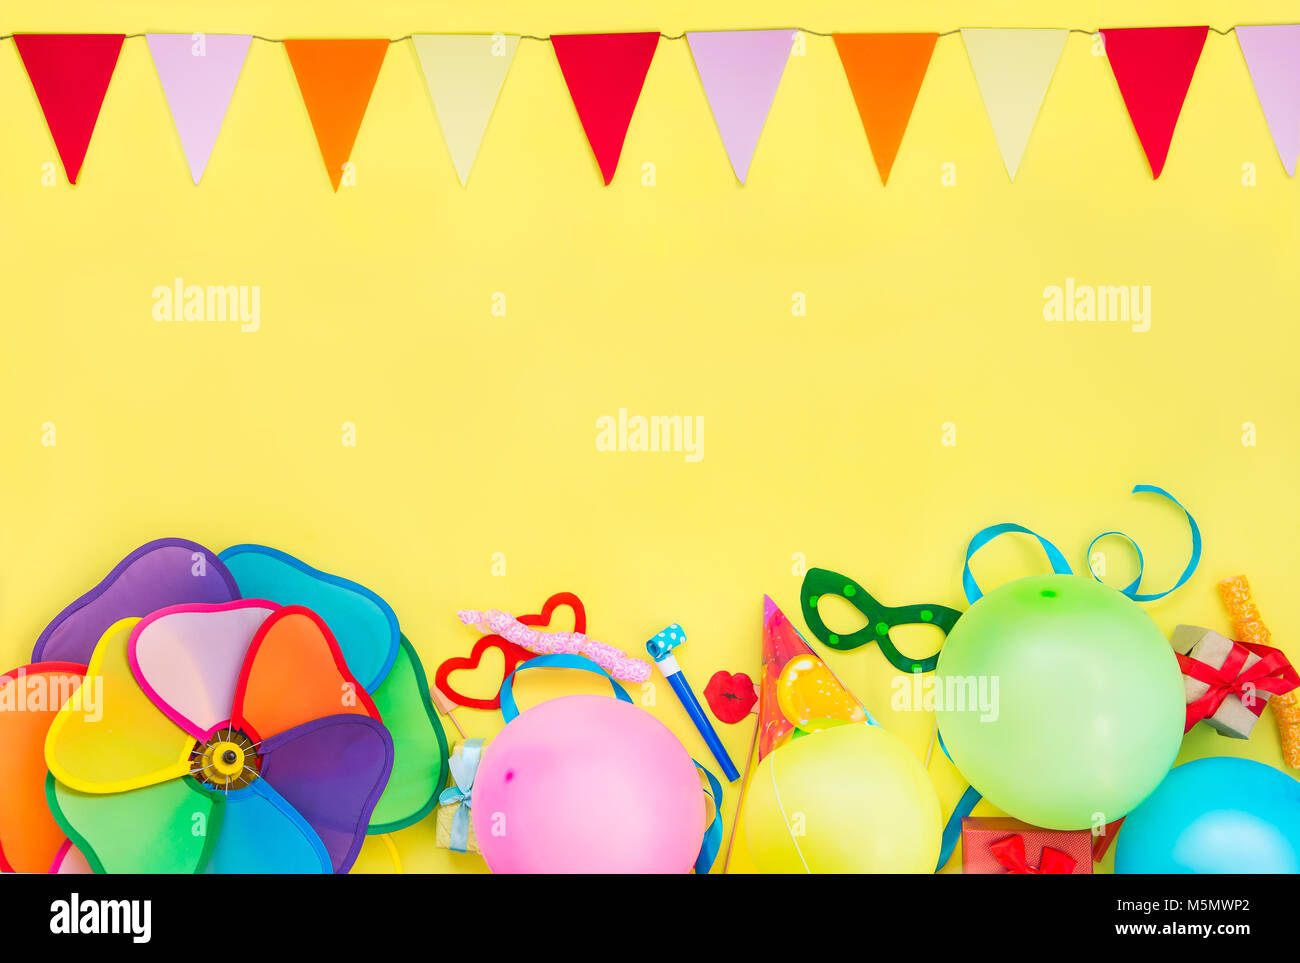 ... Background With Party Tools And Decoration   Baloons, Funny Carnival  Masks, Festive Tinsel And Garland With Flags. Happy Birthday Frame. Design  Concept.